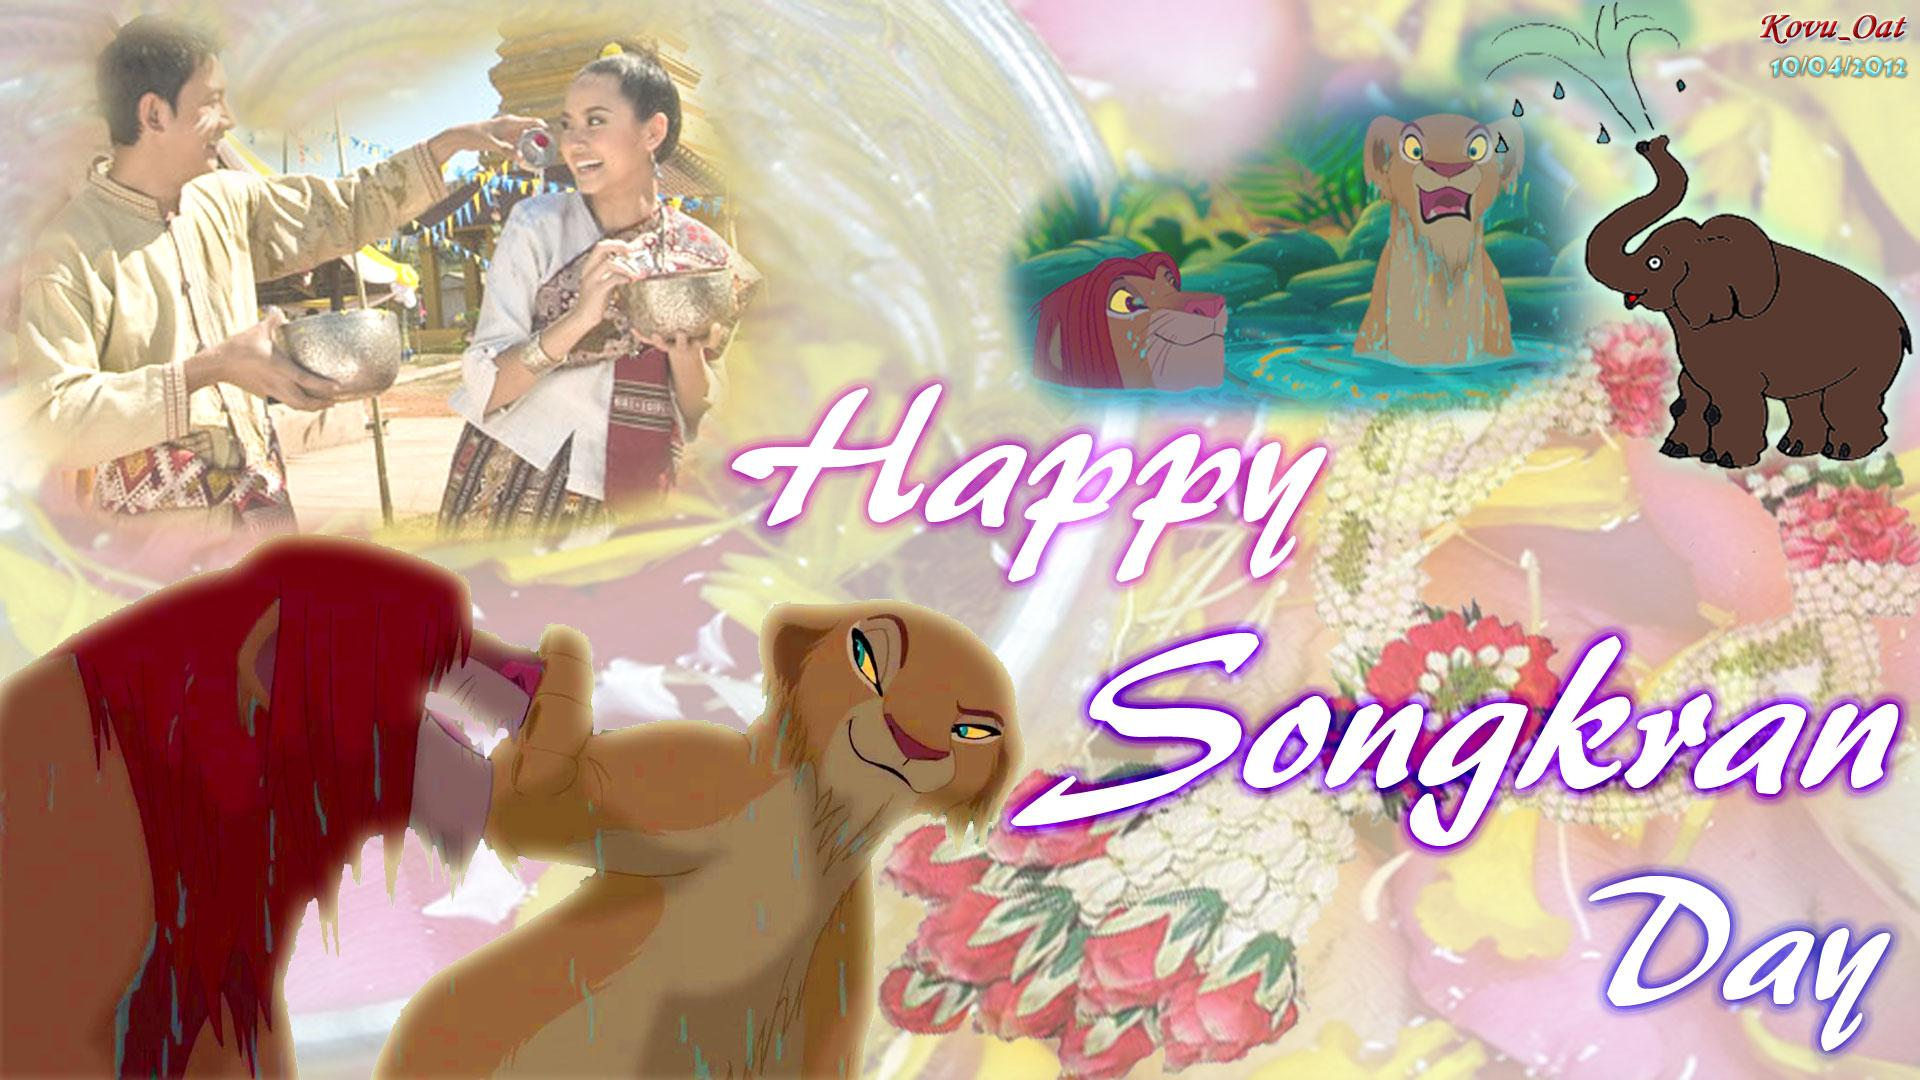 Kovu_Oat image Lion king Songkran Festival HD wallpapers and